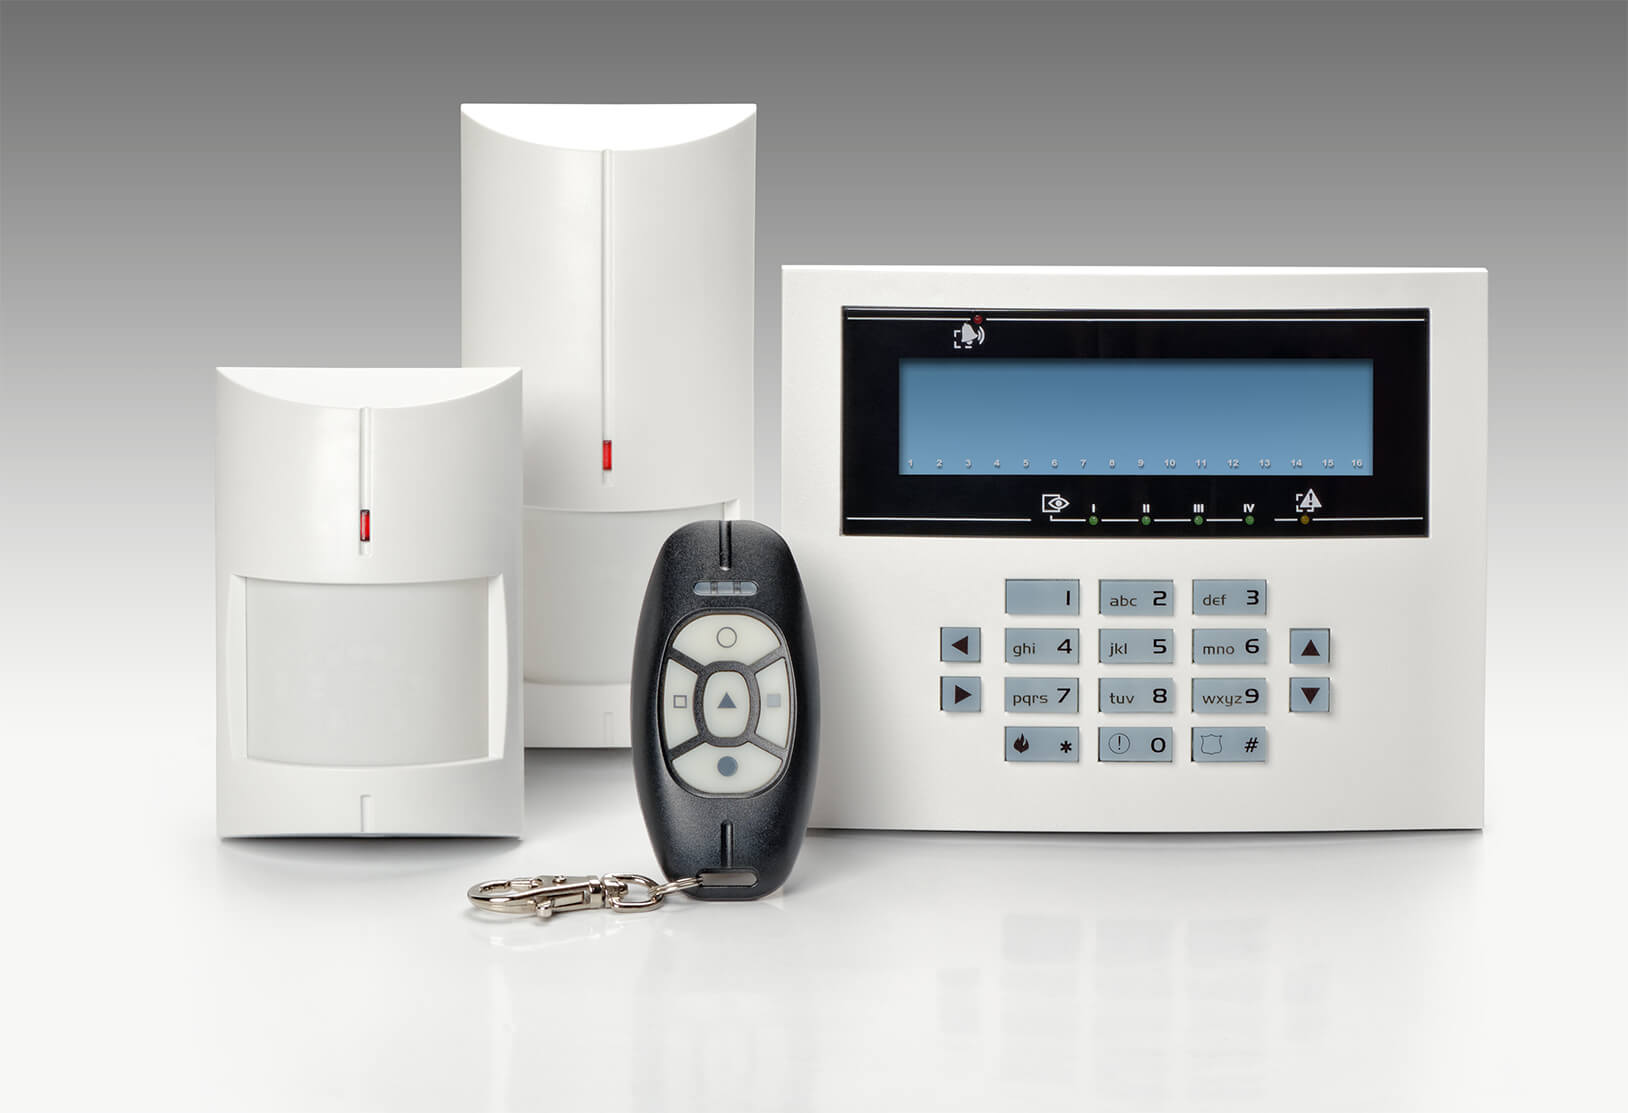 Commercial Burglar Alarms For Business in Greenwich SE13  - Local Greenwich SE13 burglar alarm company.Call 02078872244 - Dedicated to Safety & Security. Companies, shops and homes ..